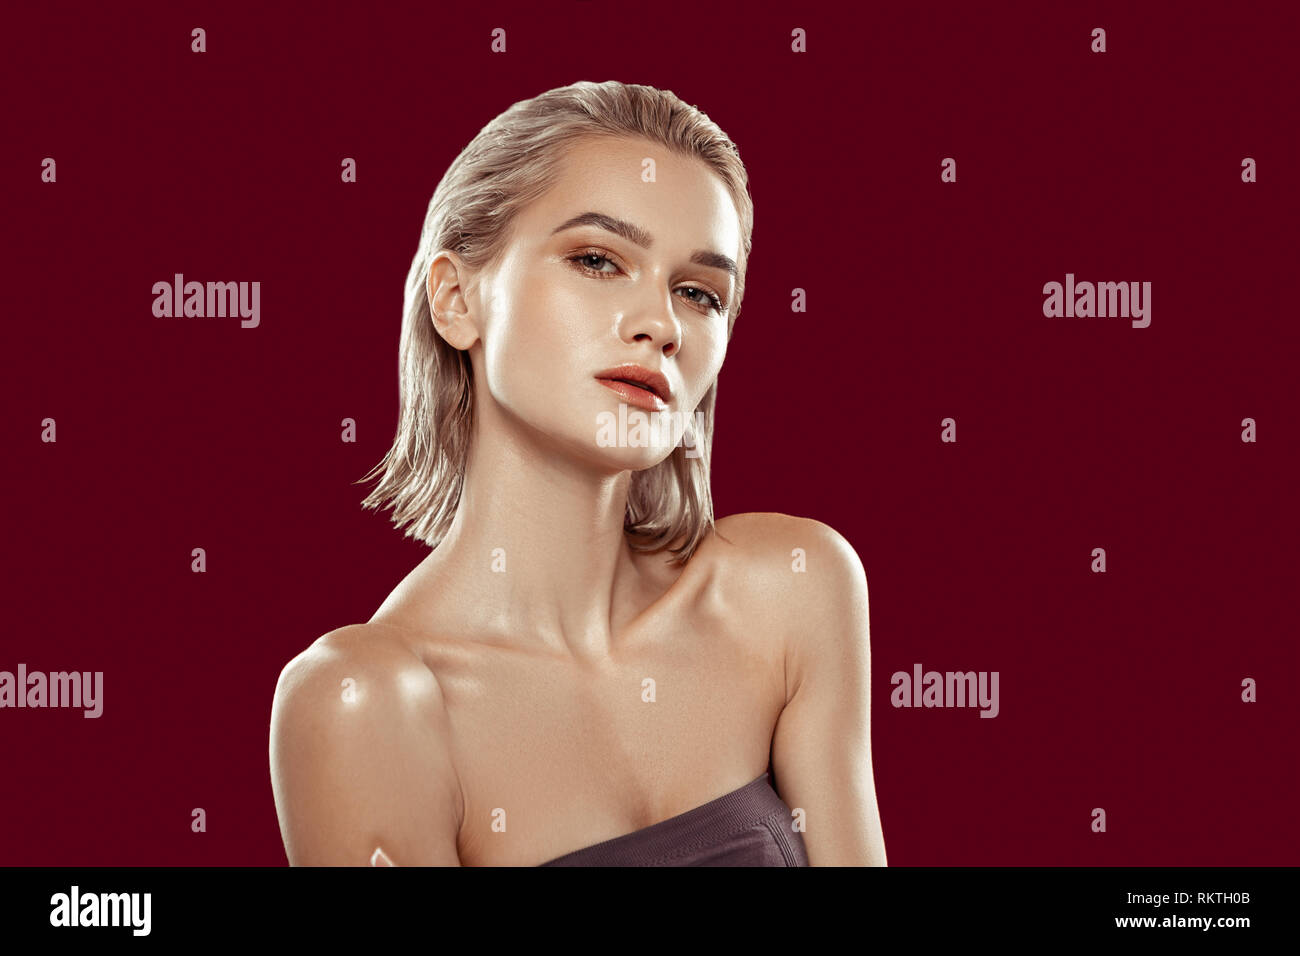 Photo model with bob cut working in spacious photo studio - Stock Image